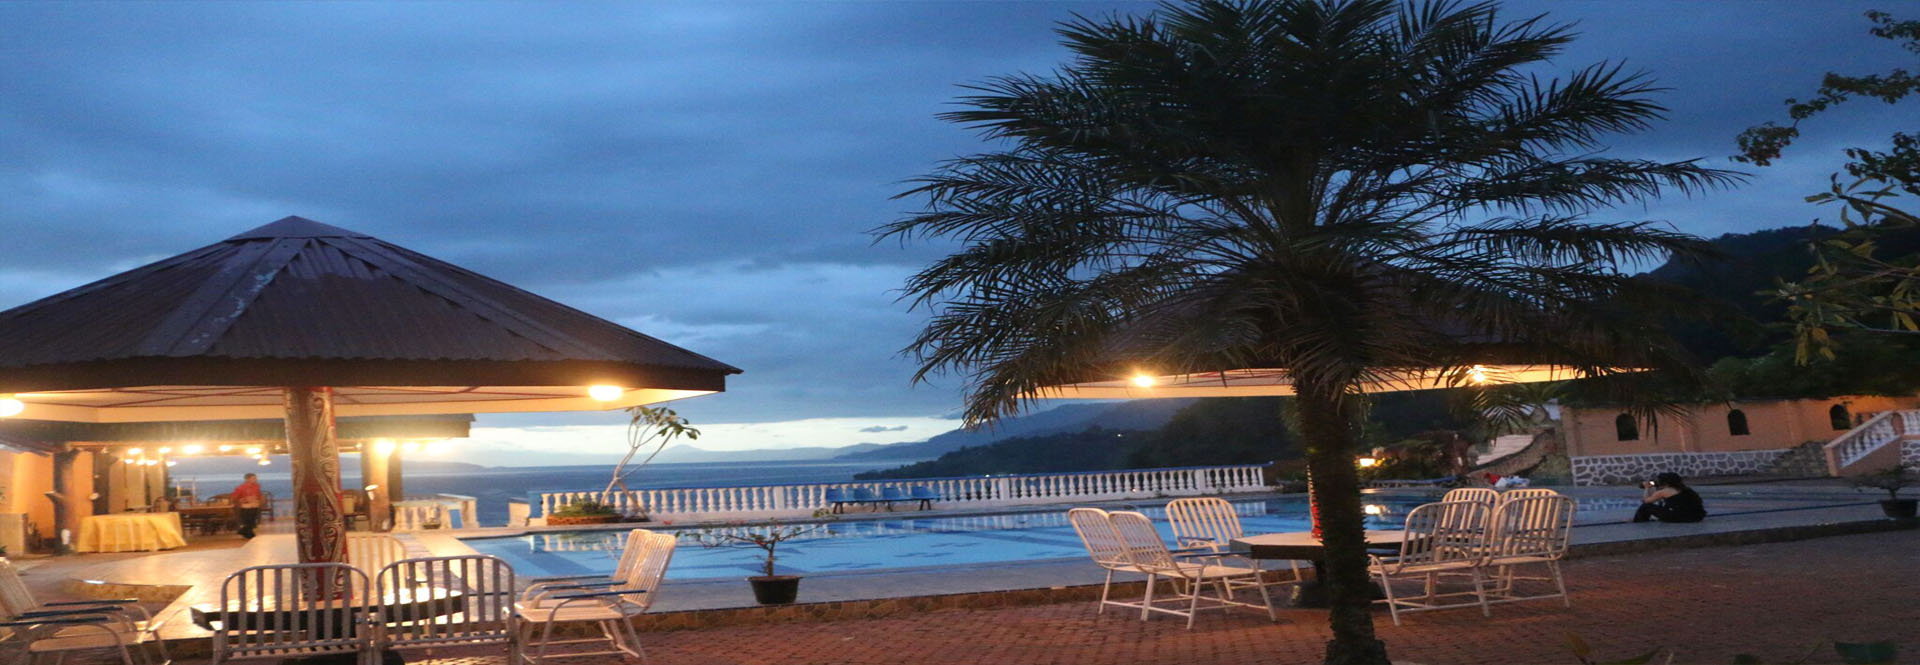 The Parapat View Hotel